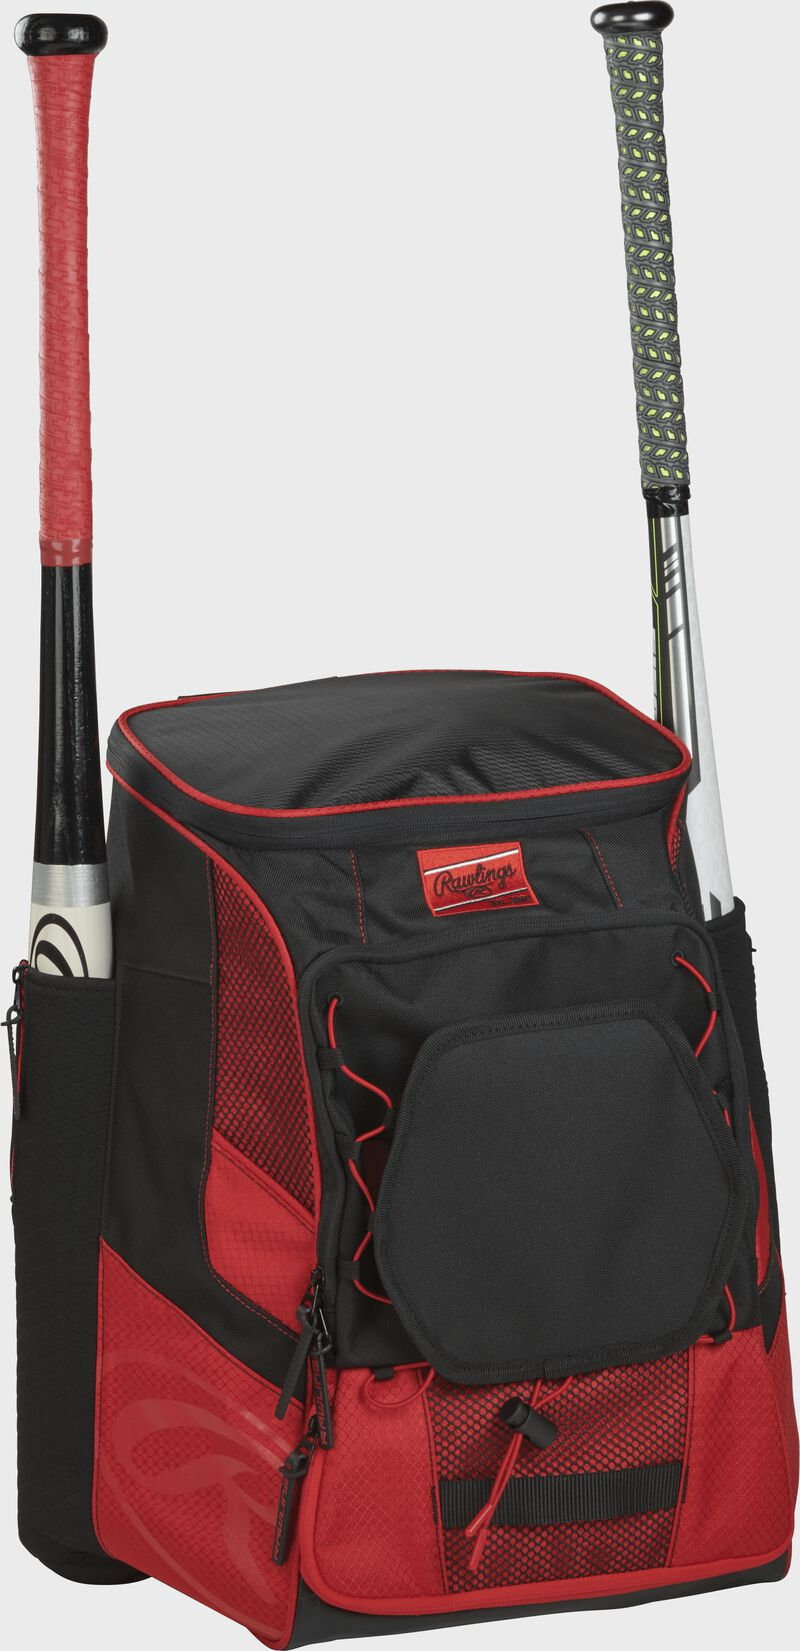 Front right of a scarlet/black R600 Rawlings players bag with two bats and Oval R printed on the bottom panel